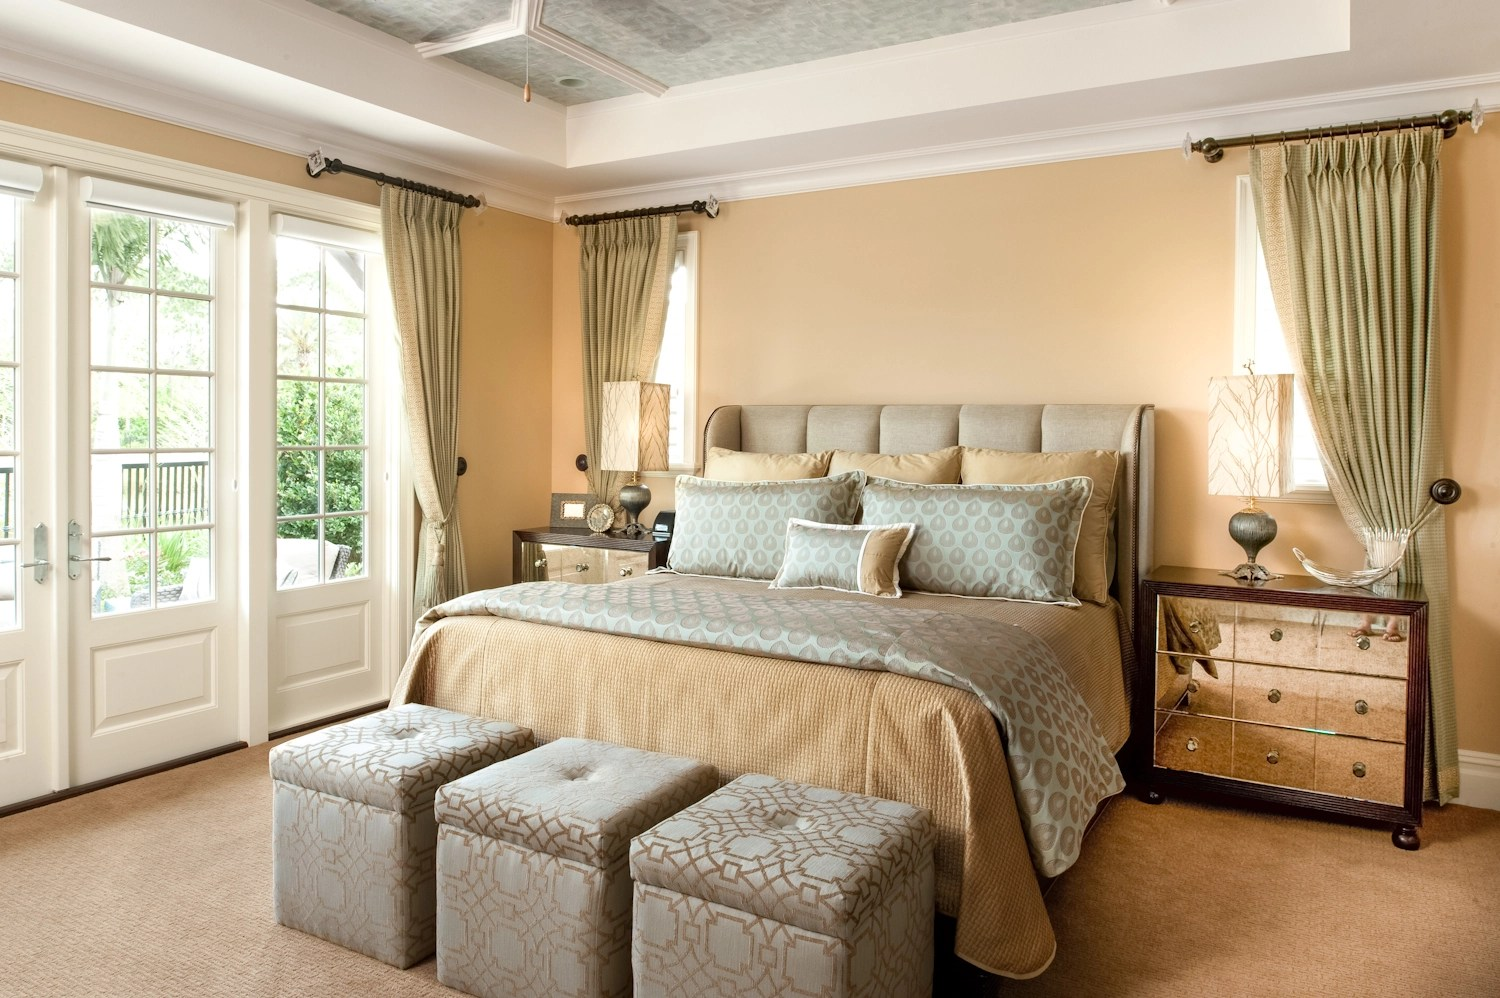 45 Master Bedroom Ideas For Your Home - The WoW Style on Best Master Bedroom Designs  id=95741